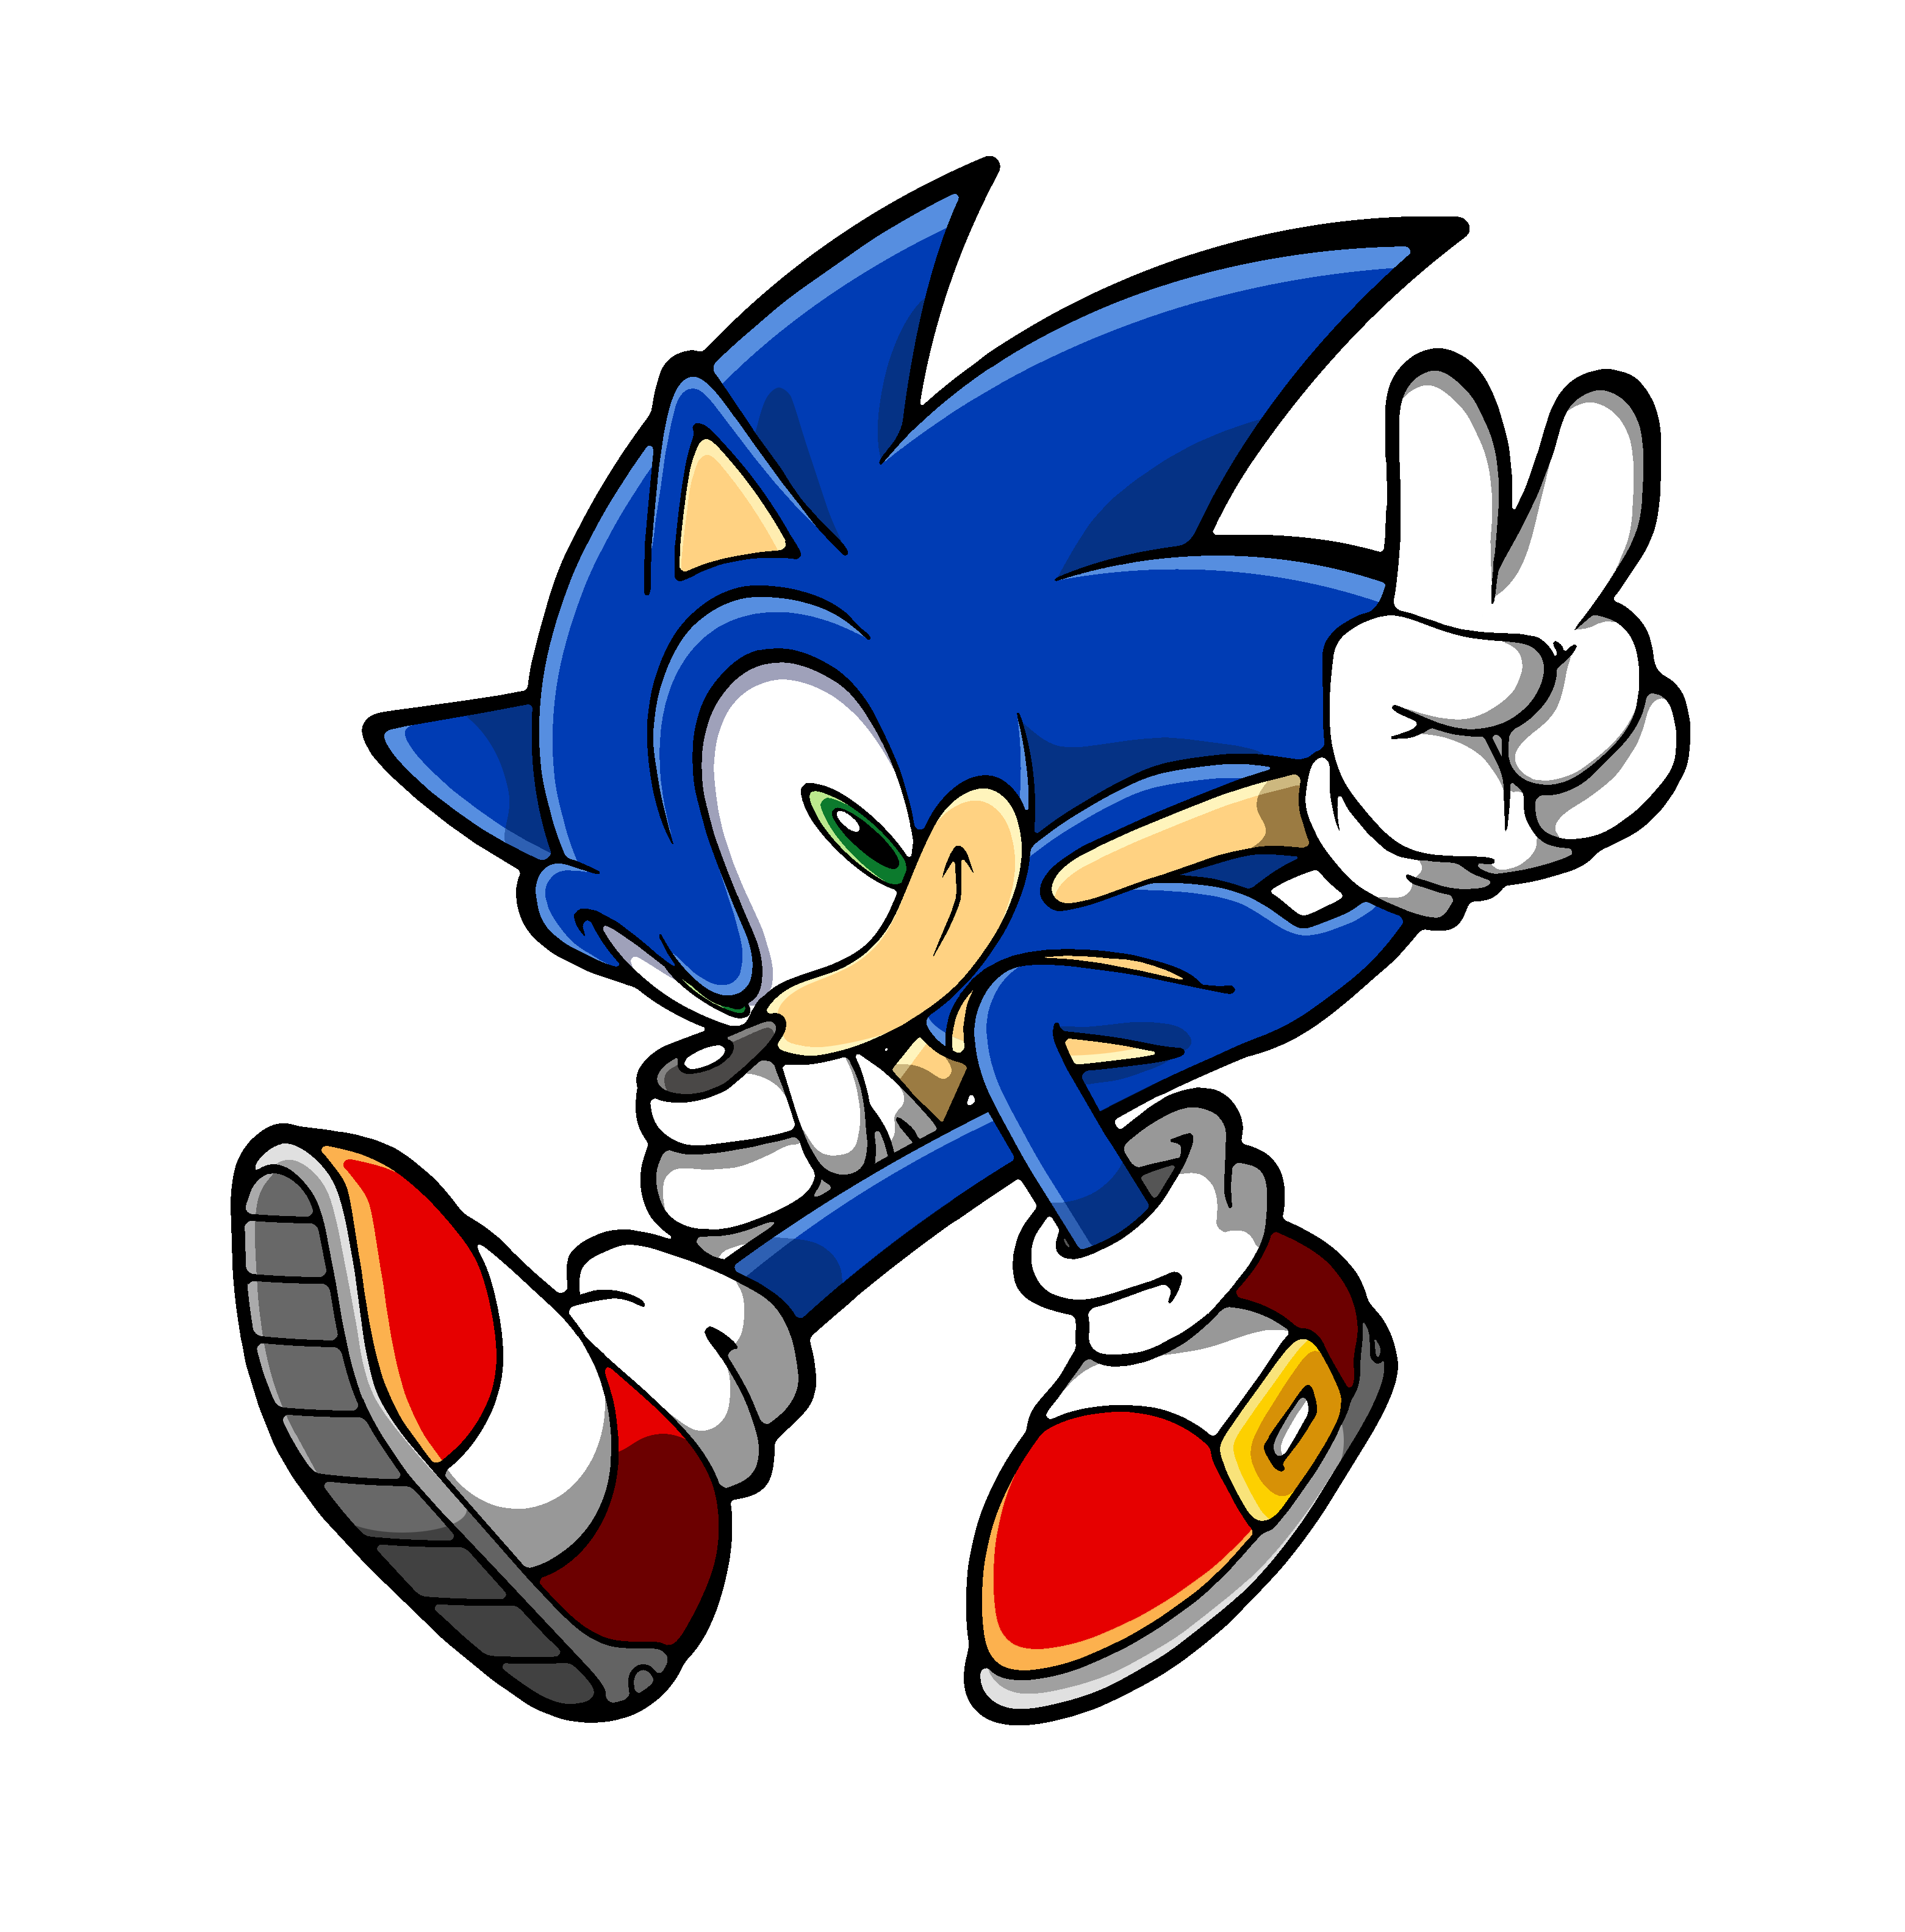 Sonic the png mart. Hedgehog clipart transparent background